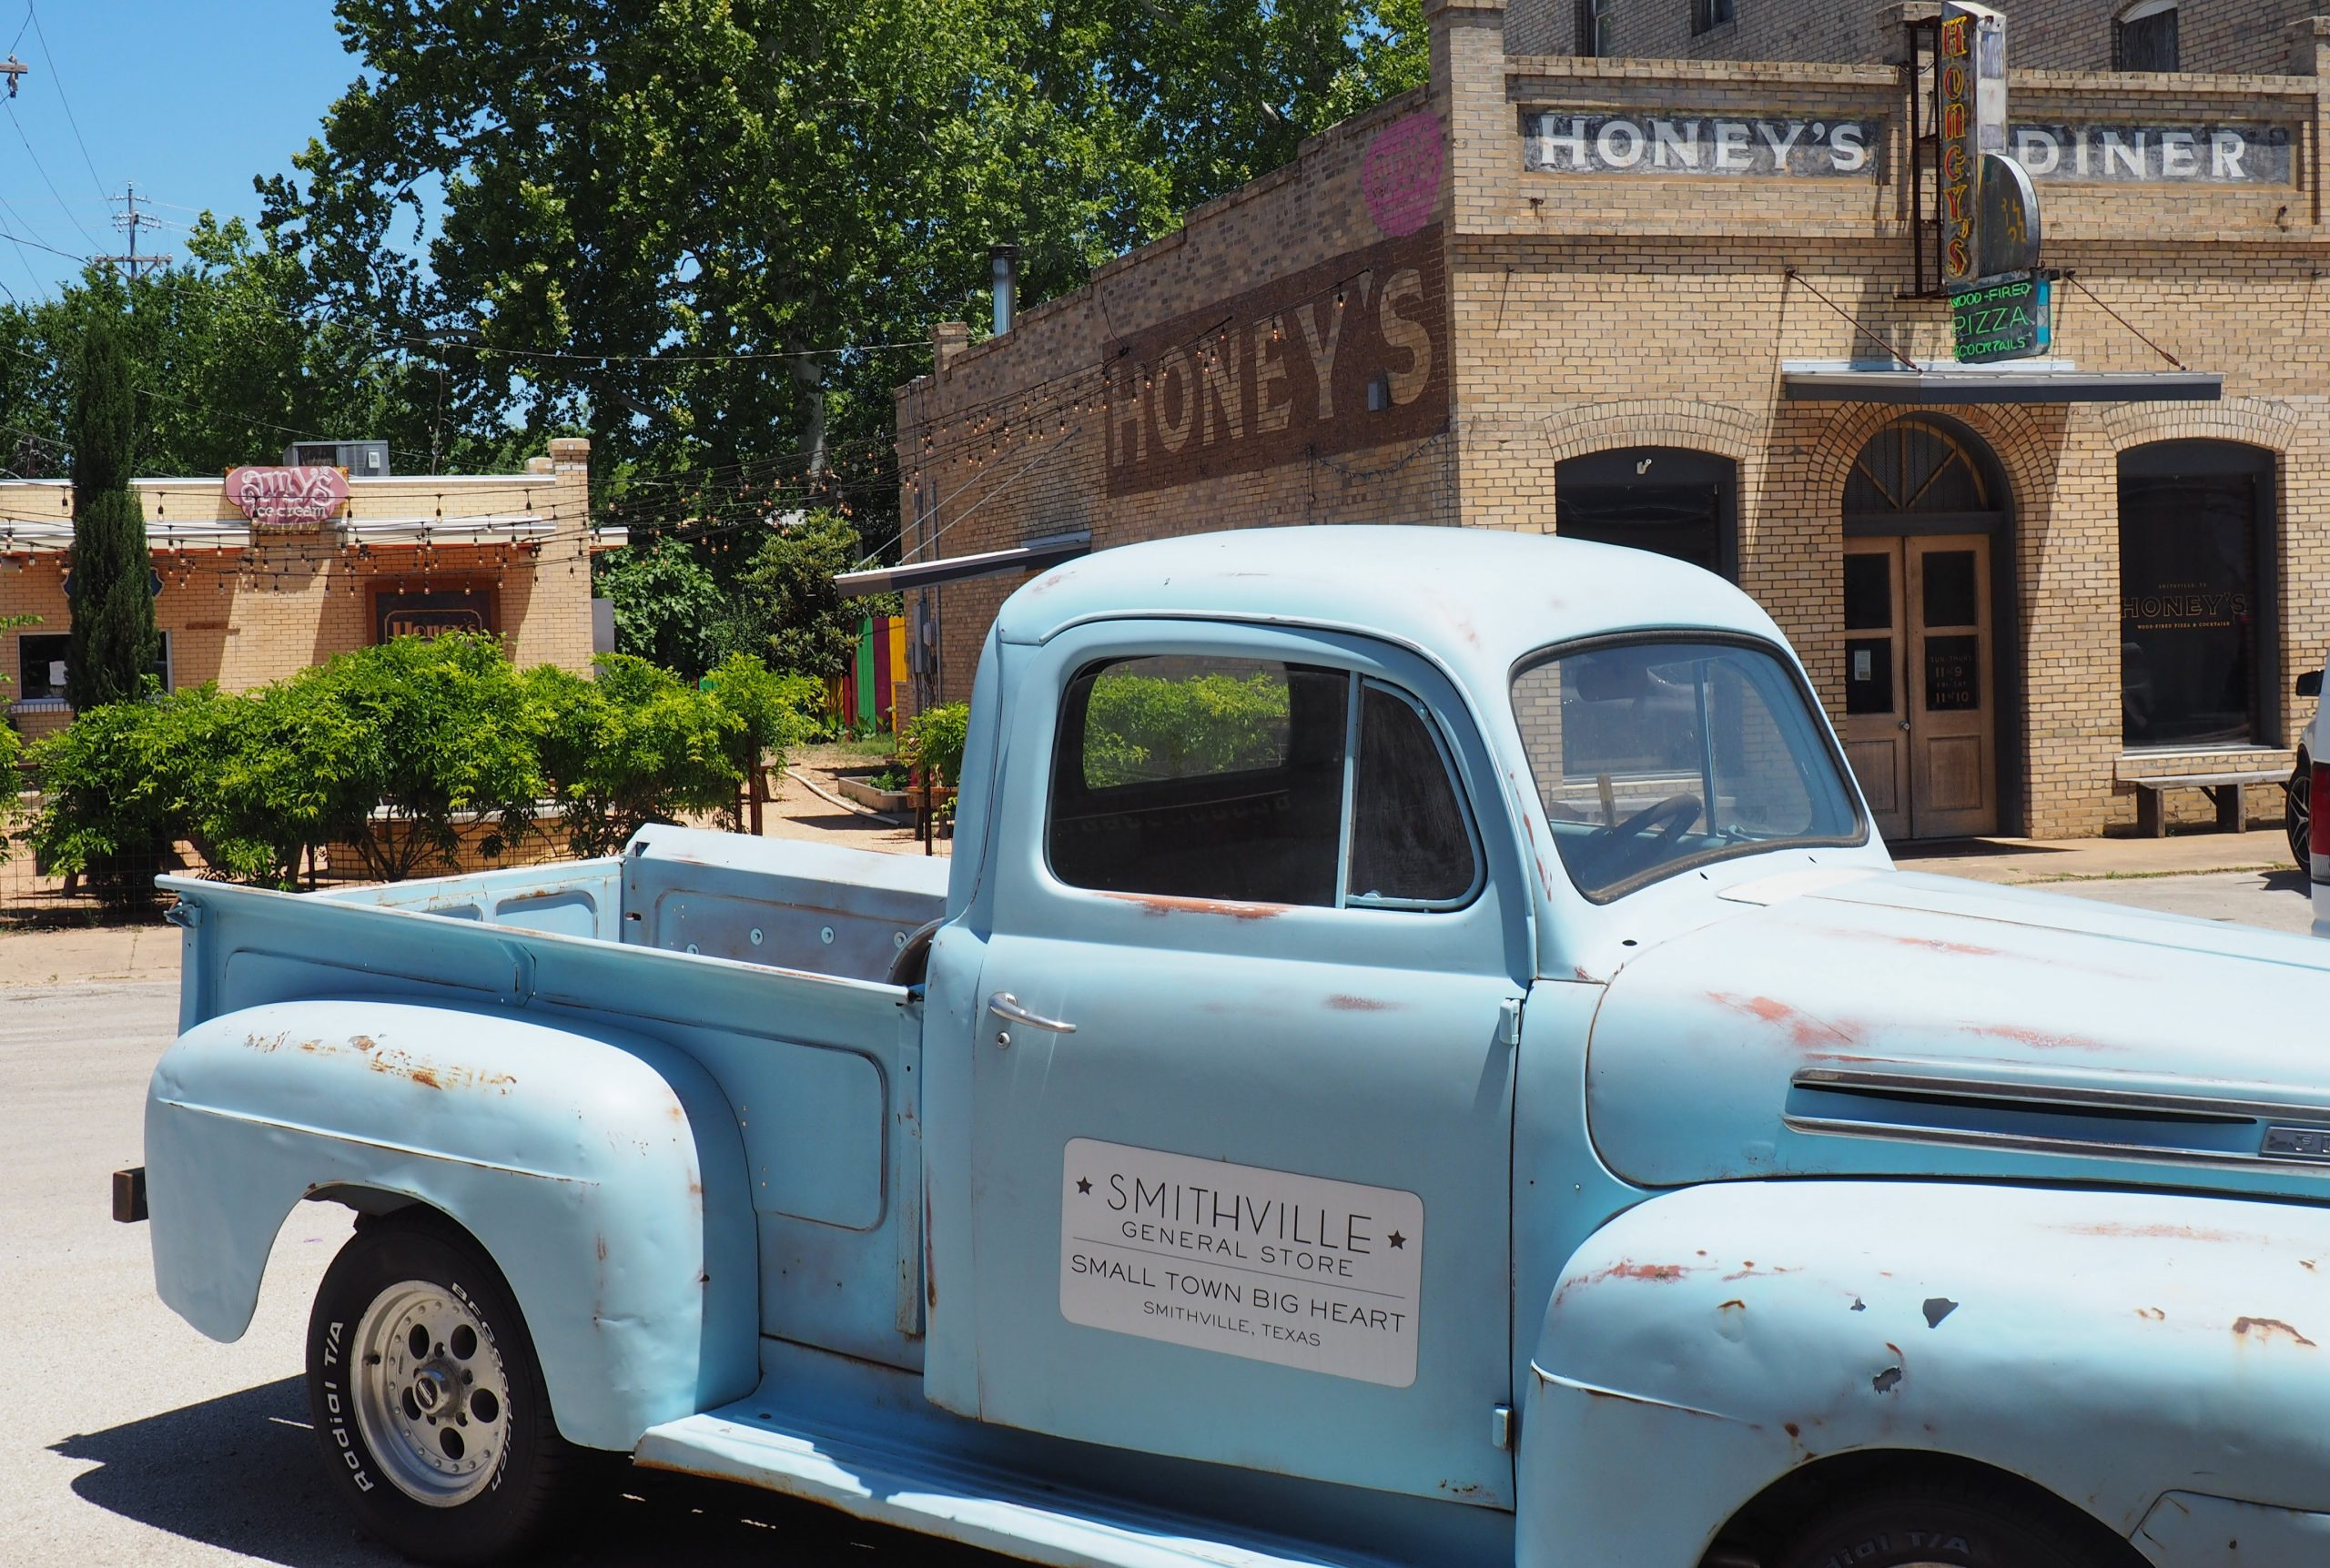 General store truck in small town